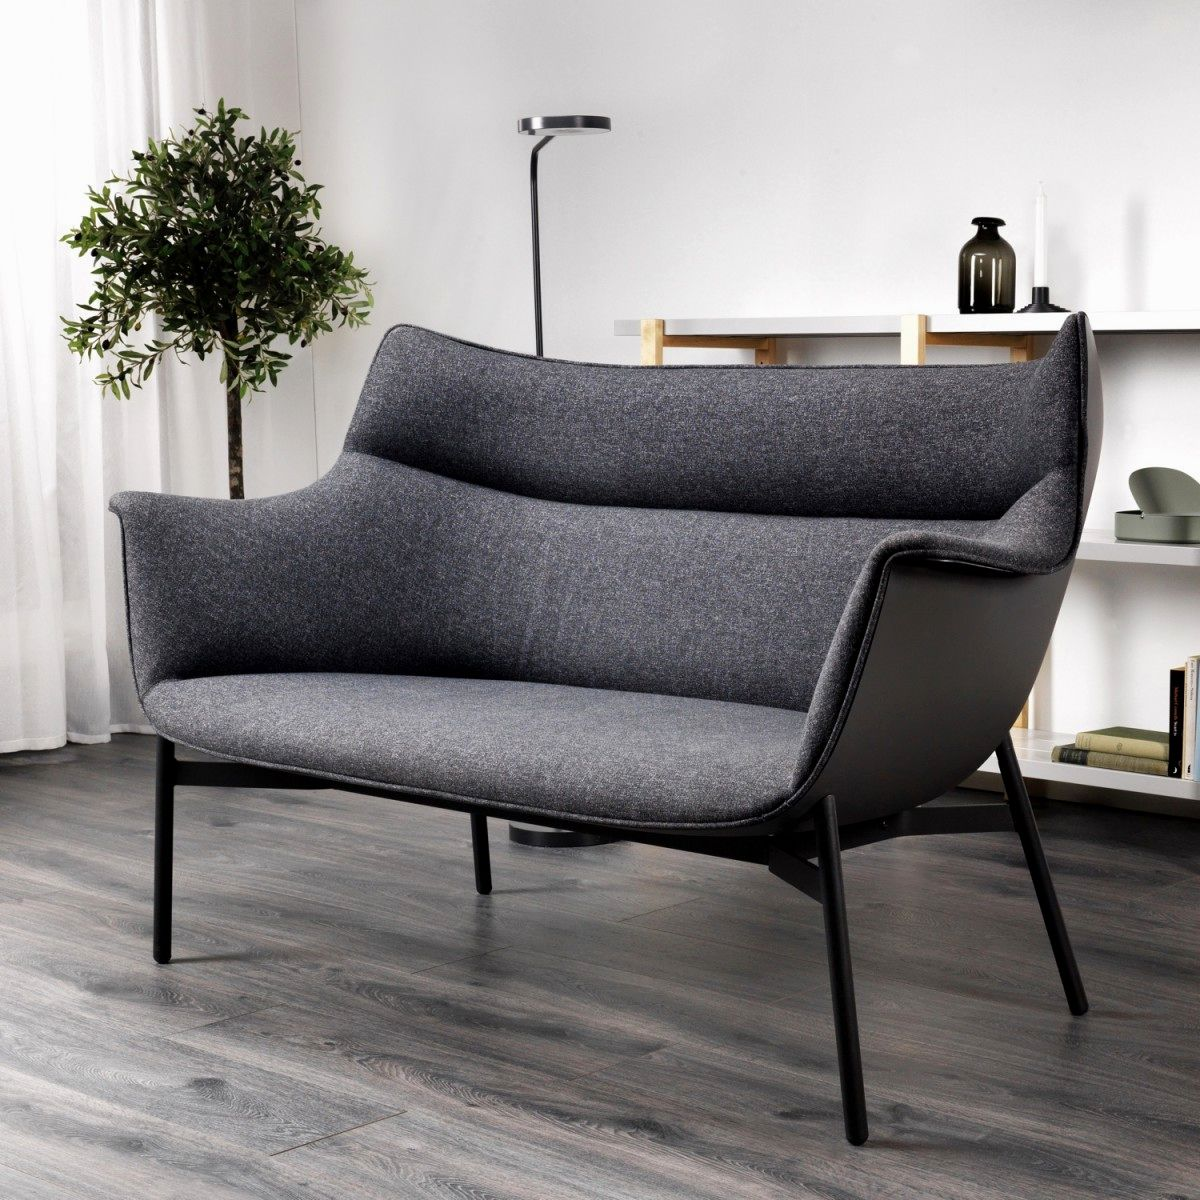 unique two seater sofa bed concept-Amazing Two Seater sofa Bed Inspiration